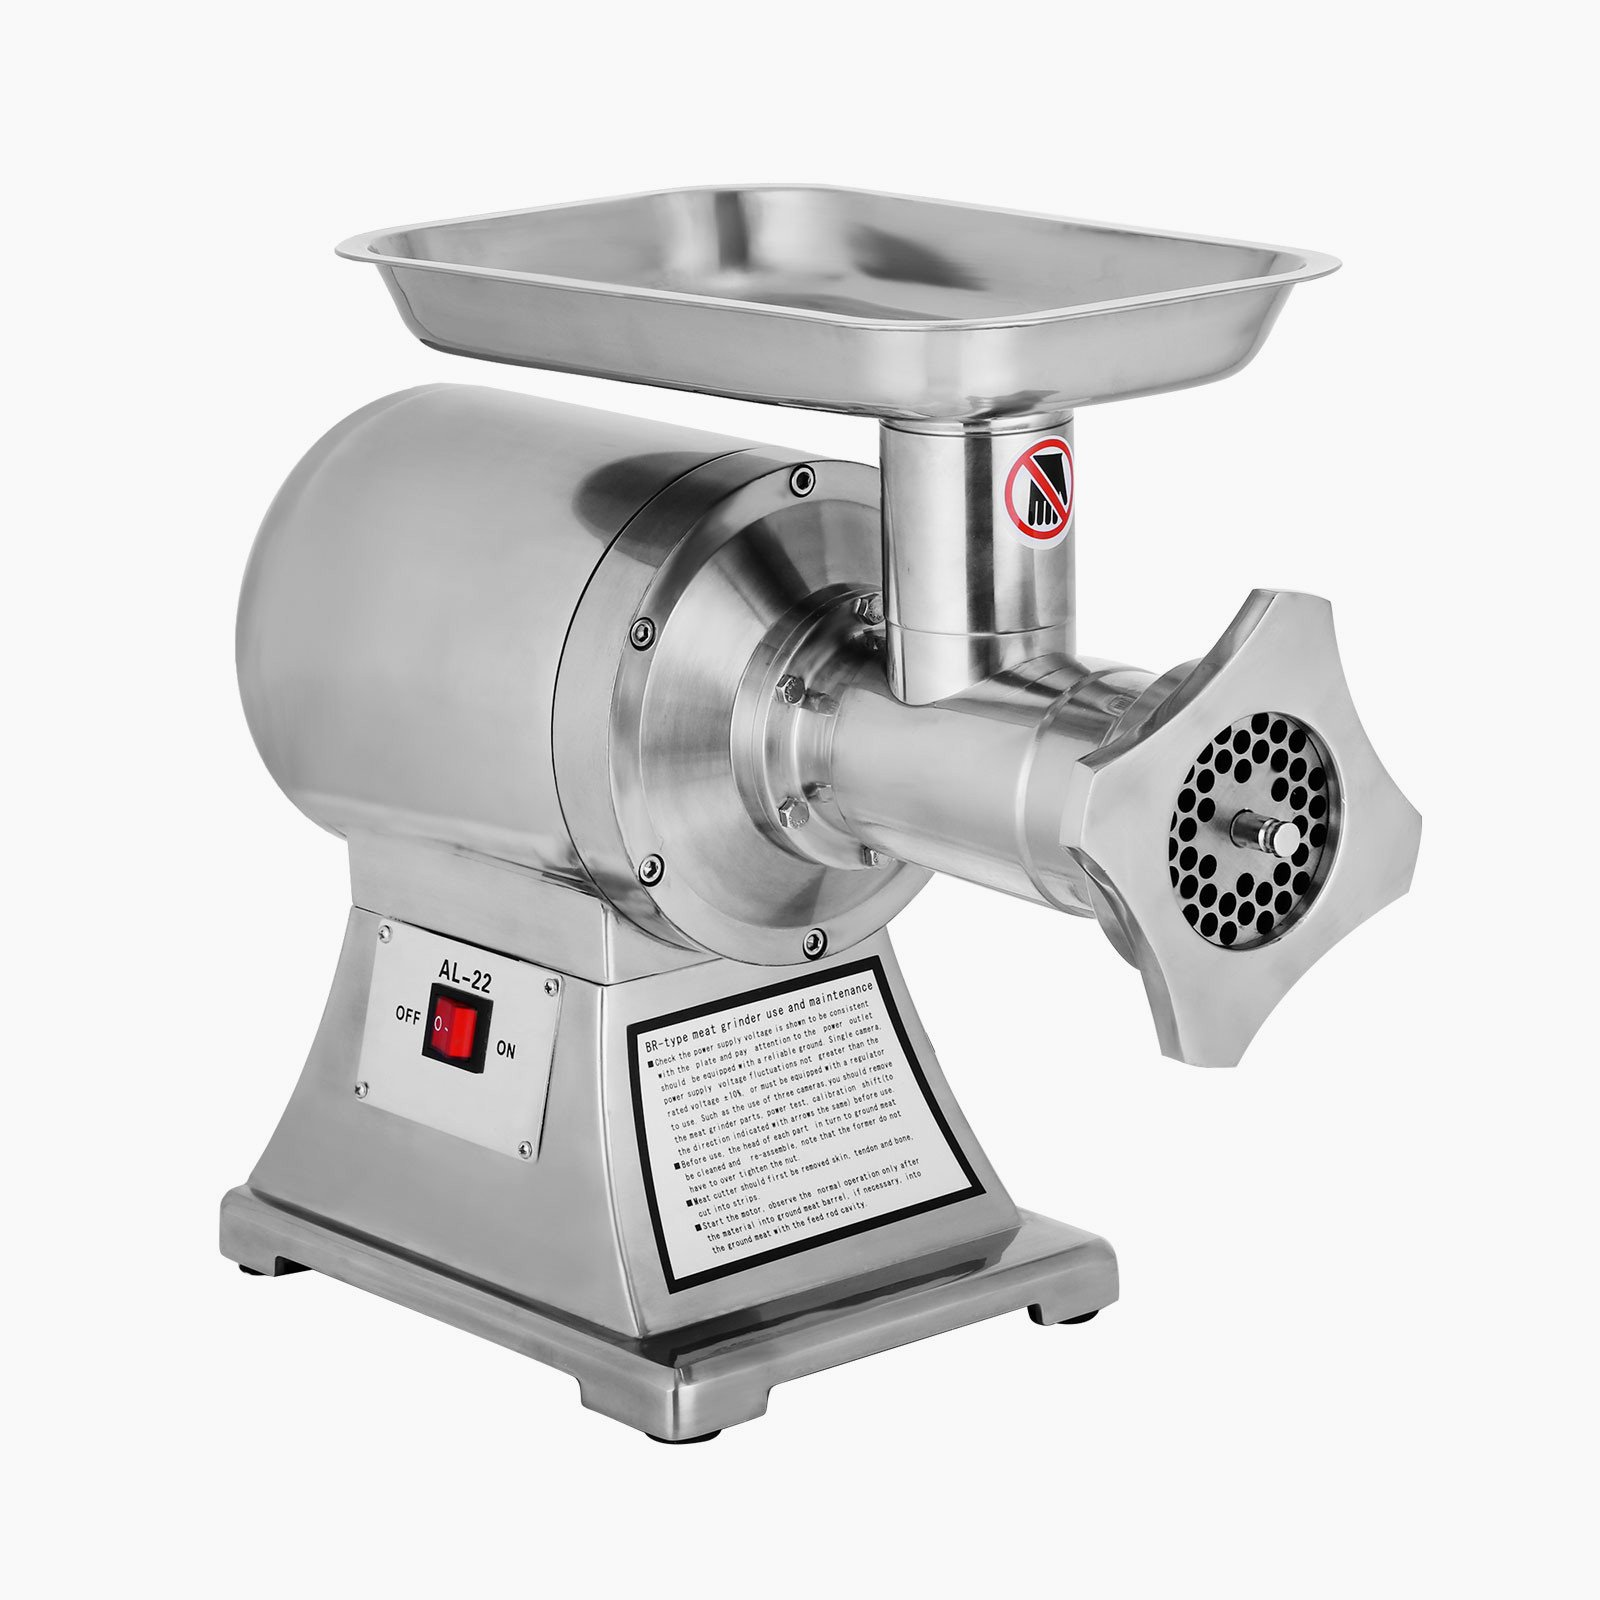 Forkwin Meat Grinder 750W Meat Mincer 550LBS/H Meat Mincer Grinder 193/125 RPM Meat Mincer Electric for Home Use